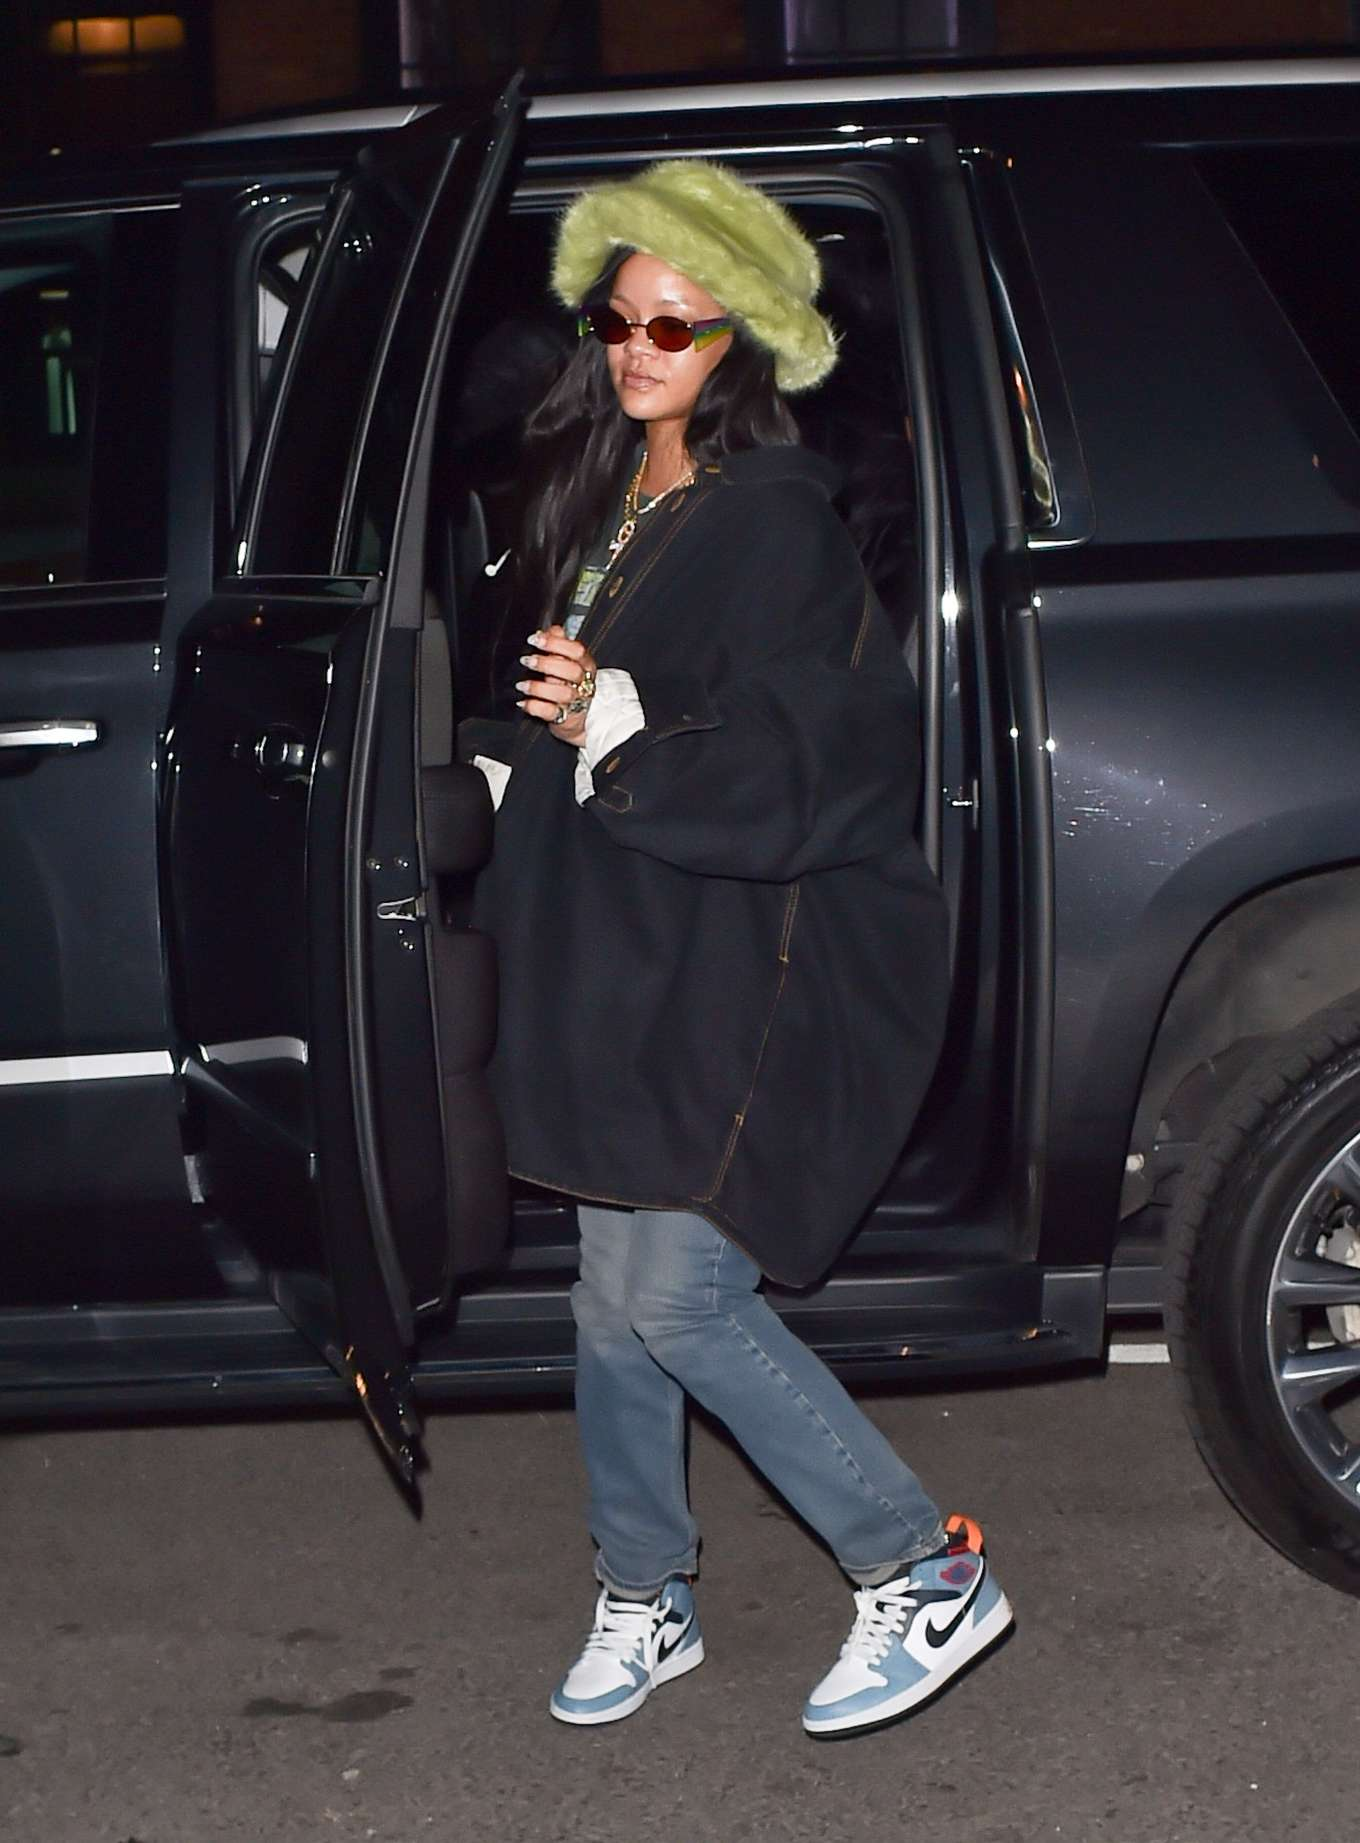 Rihanna rocking brand logo blue white lace-up sneakers